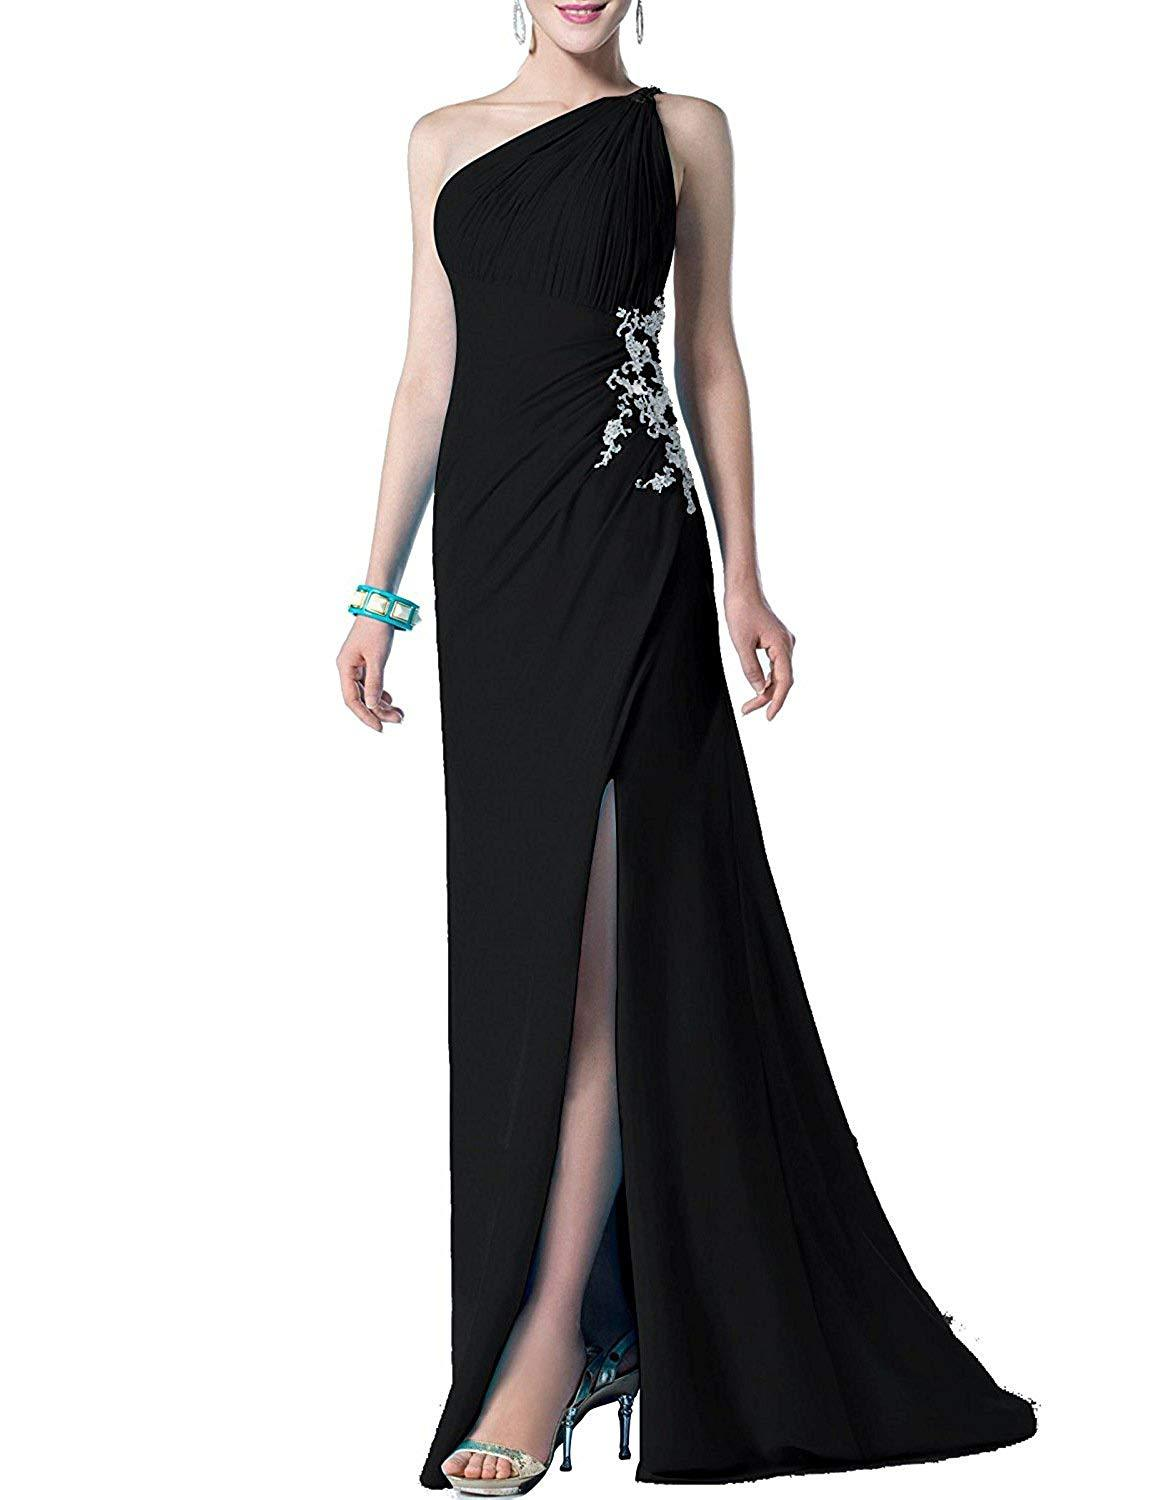 2019 One Shoulder Chiffon Beaded Prom Dress Side Slit Long Evening Formal Gowns